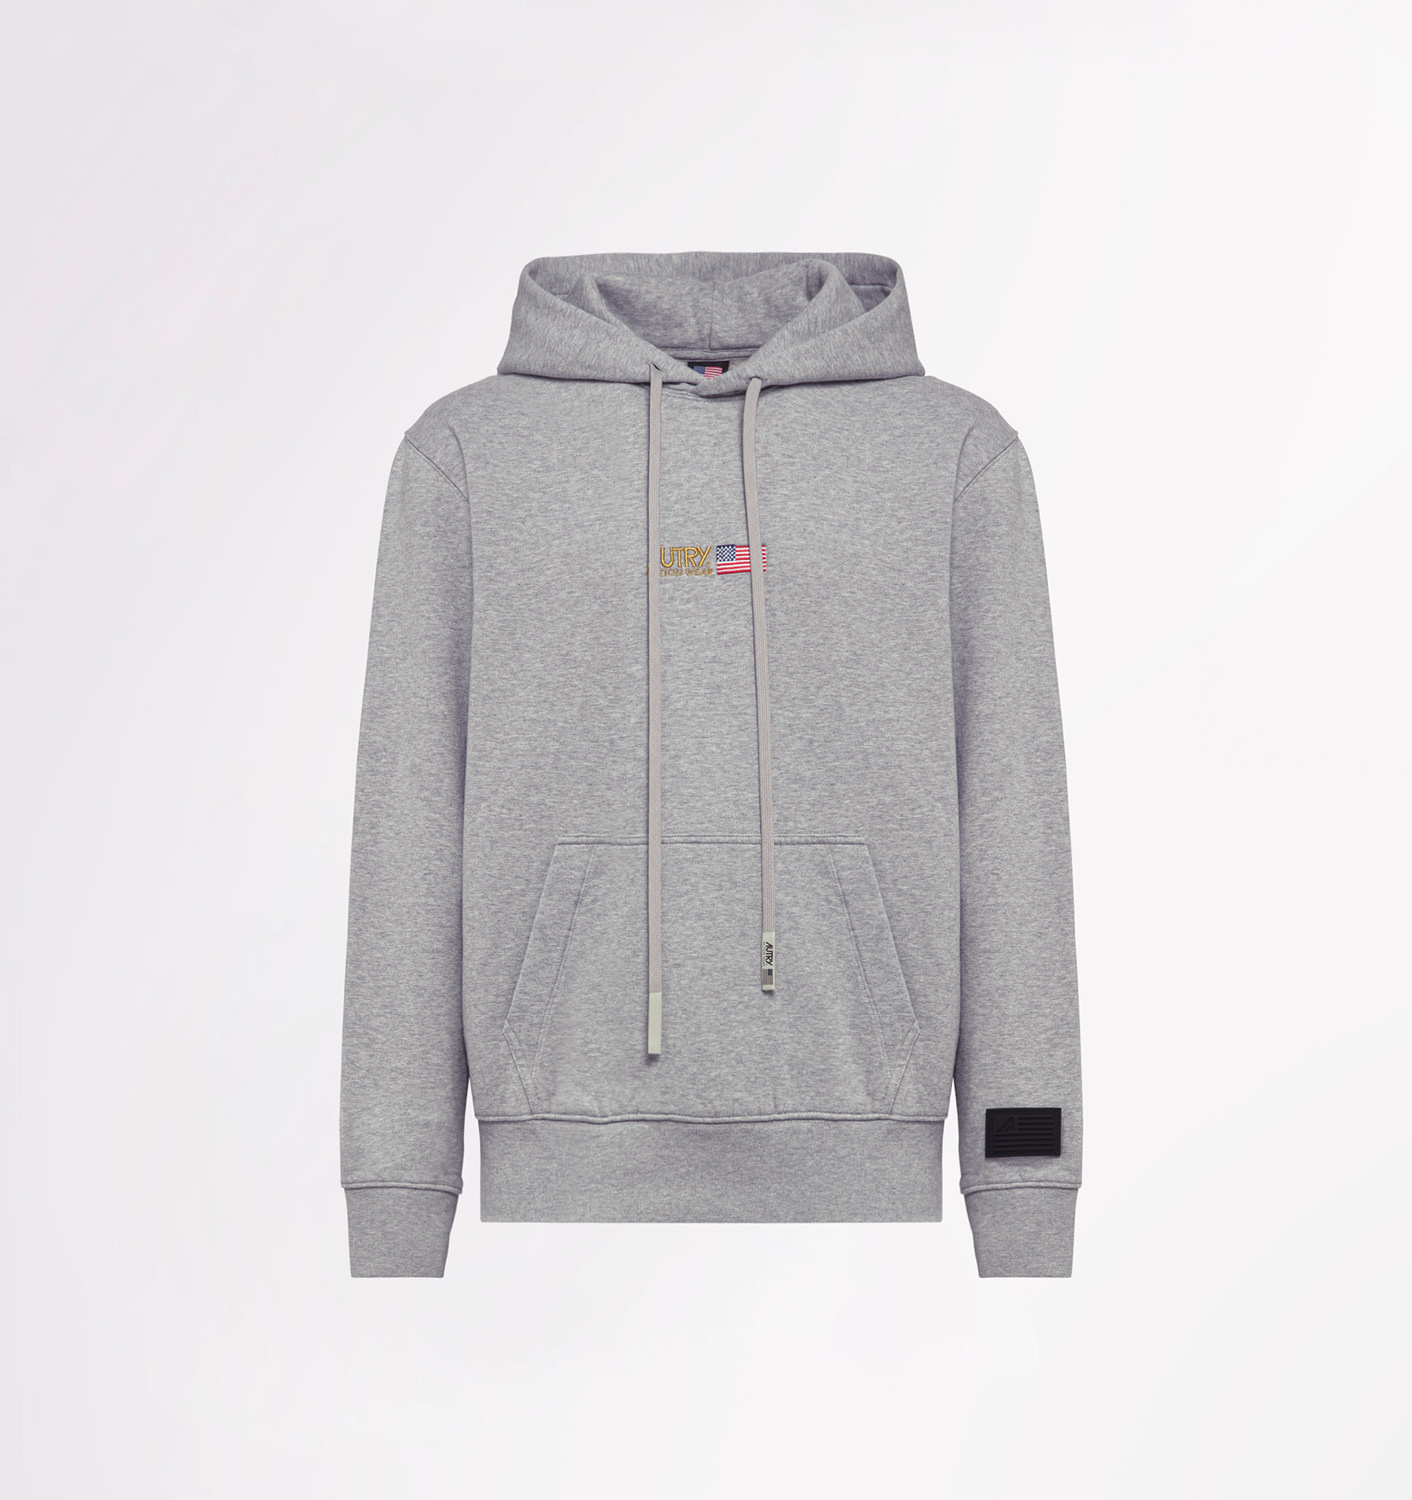 AUTRY: GOLD CLUB SWEATSHIRT WITH HOOD AND PATCH